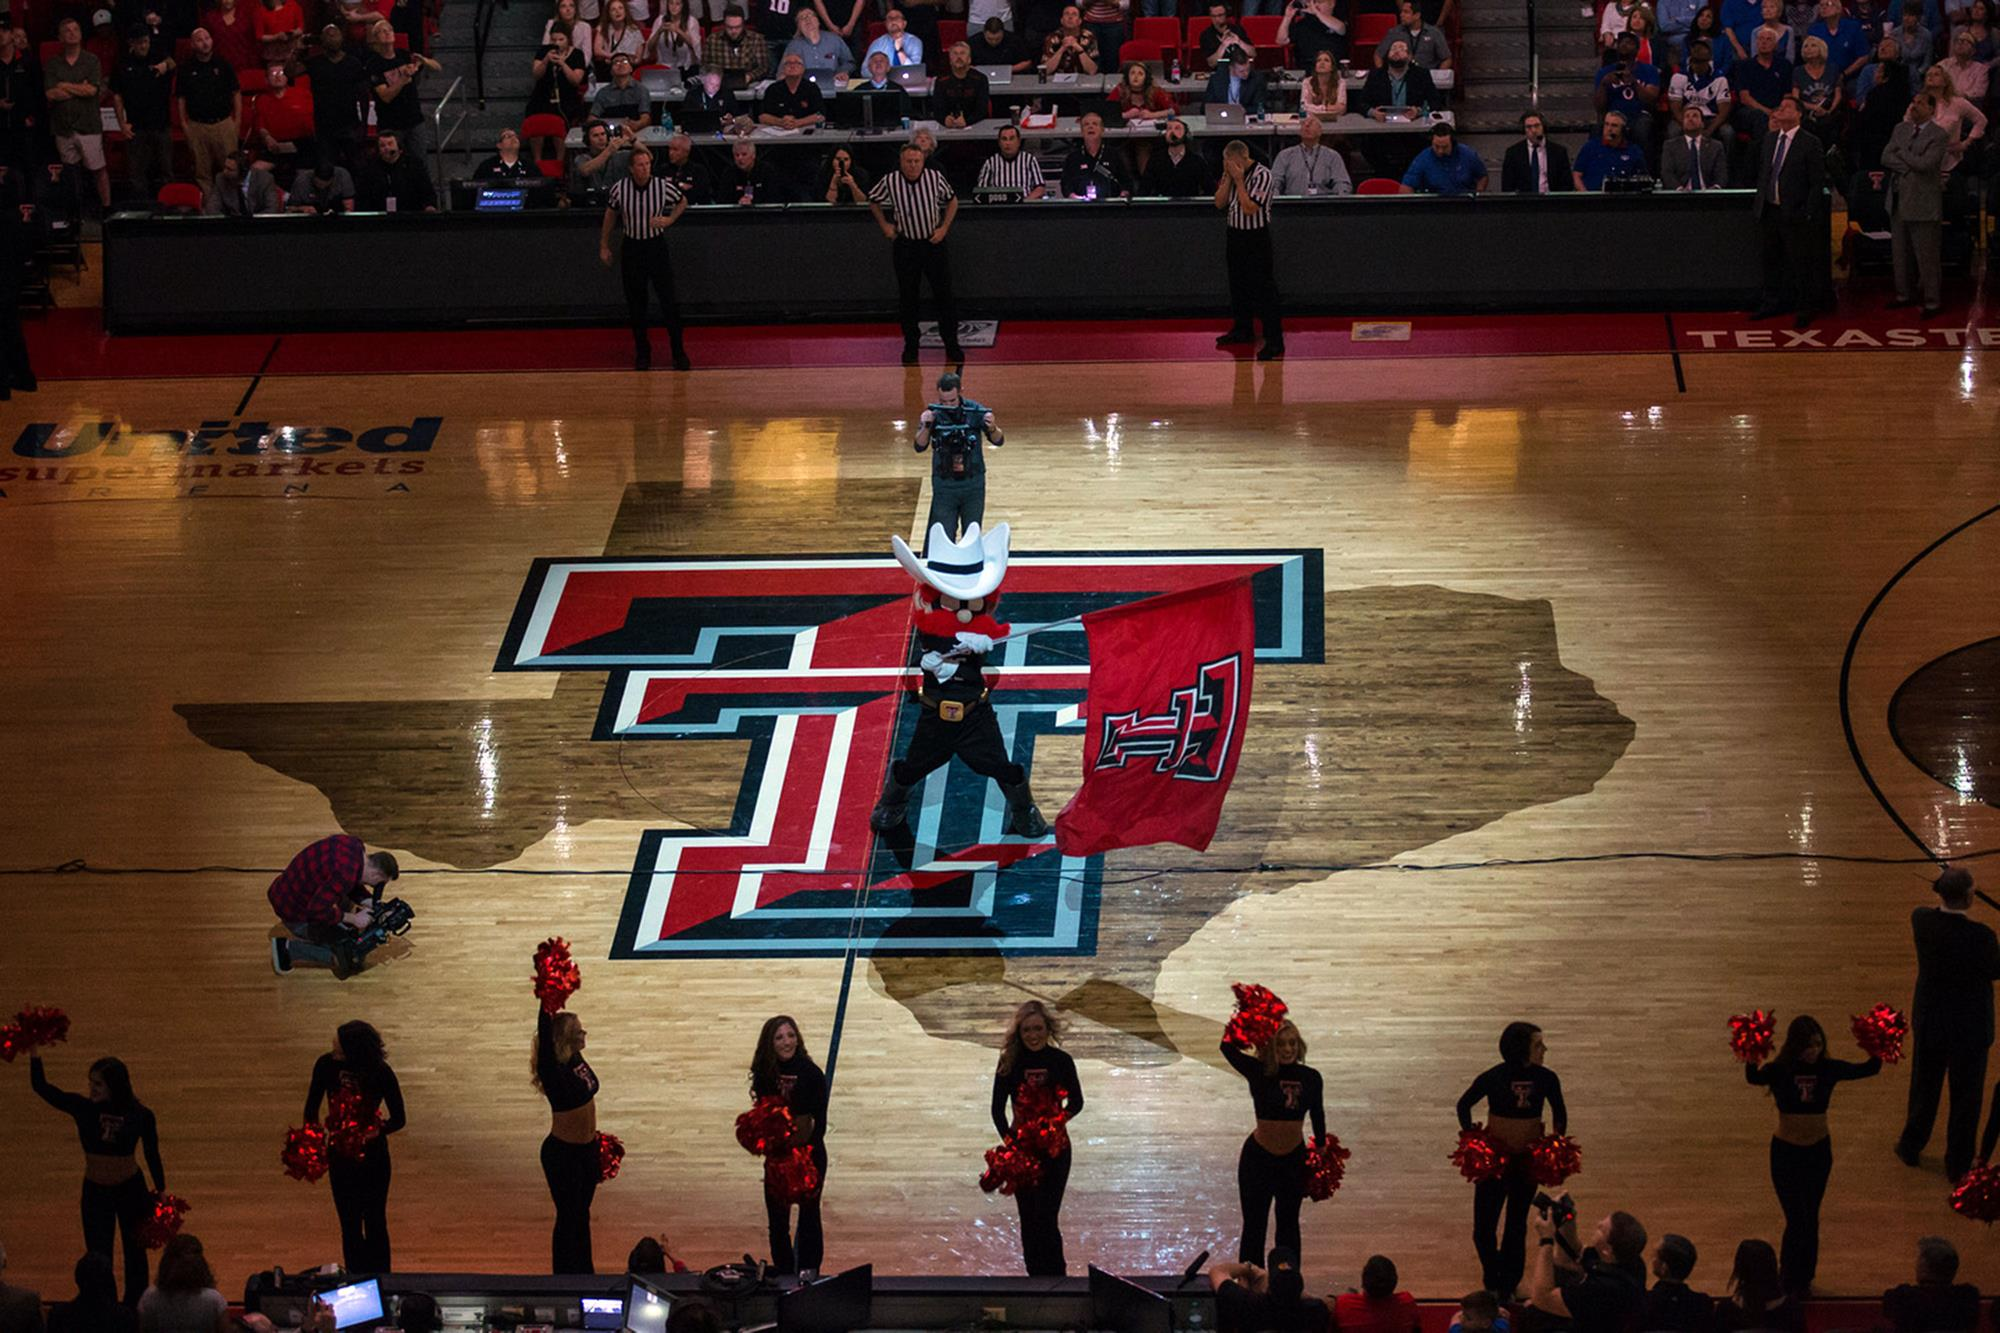 basketball season ticket upgrades now available - texas tech